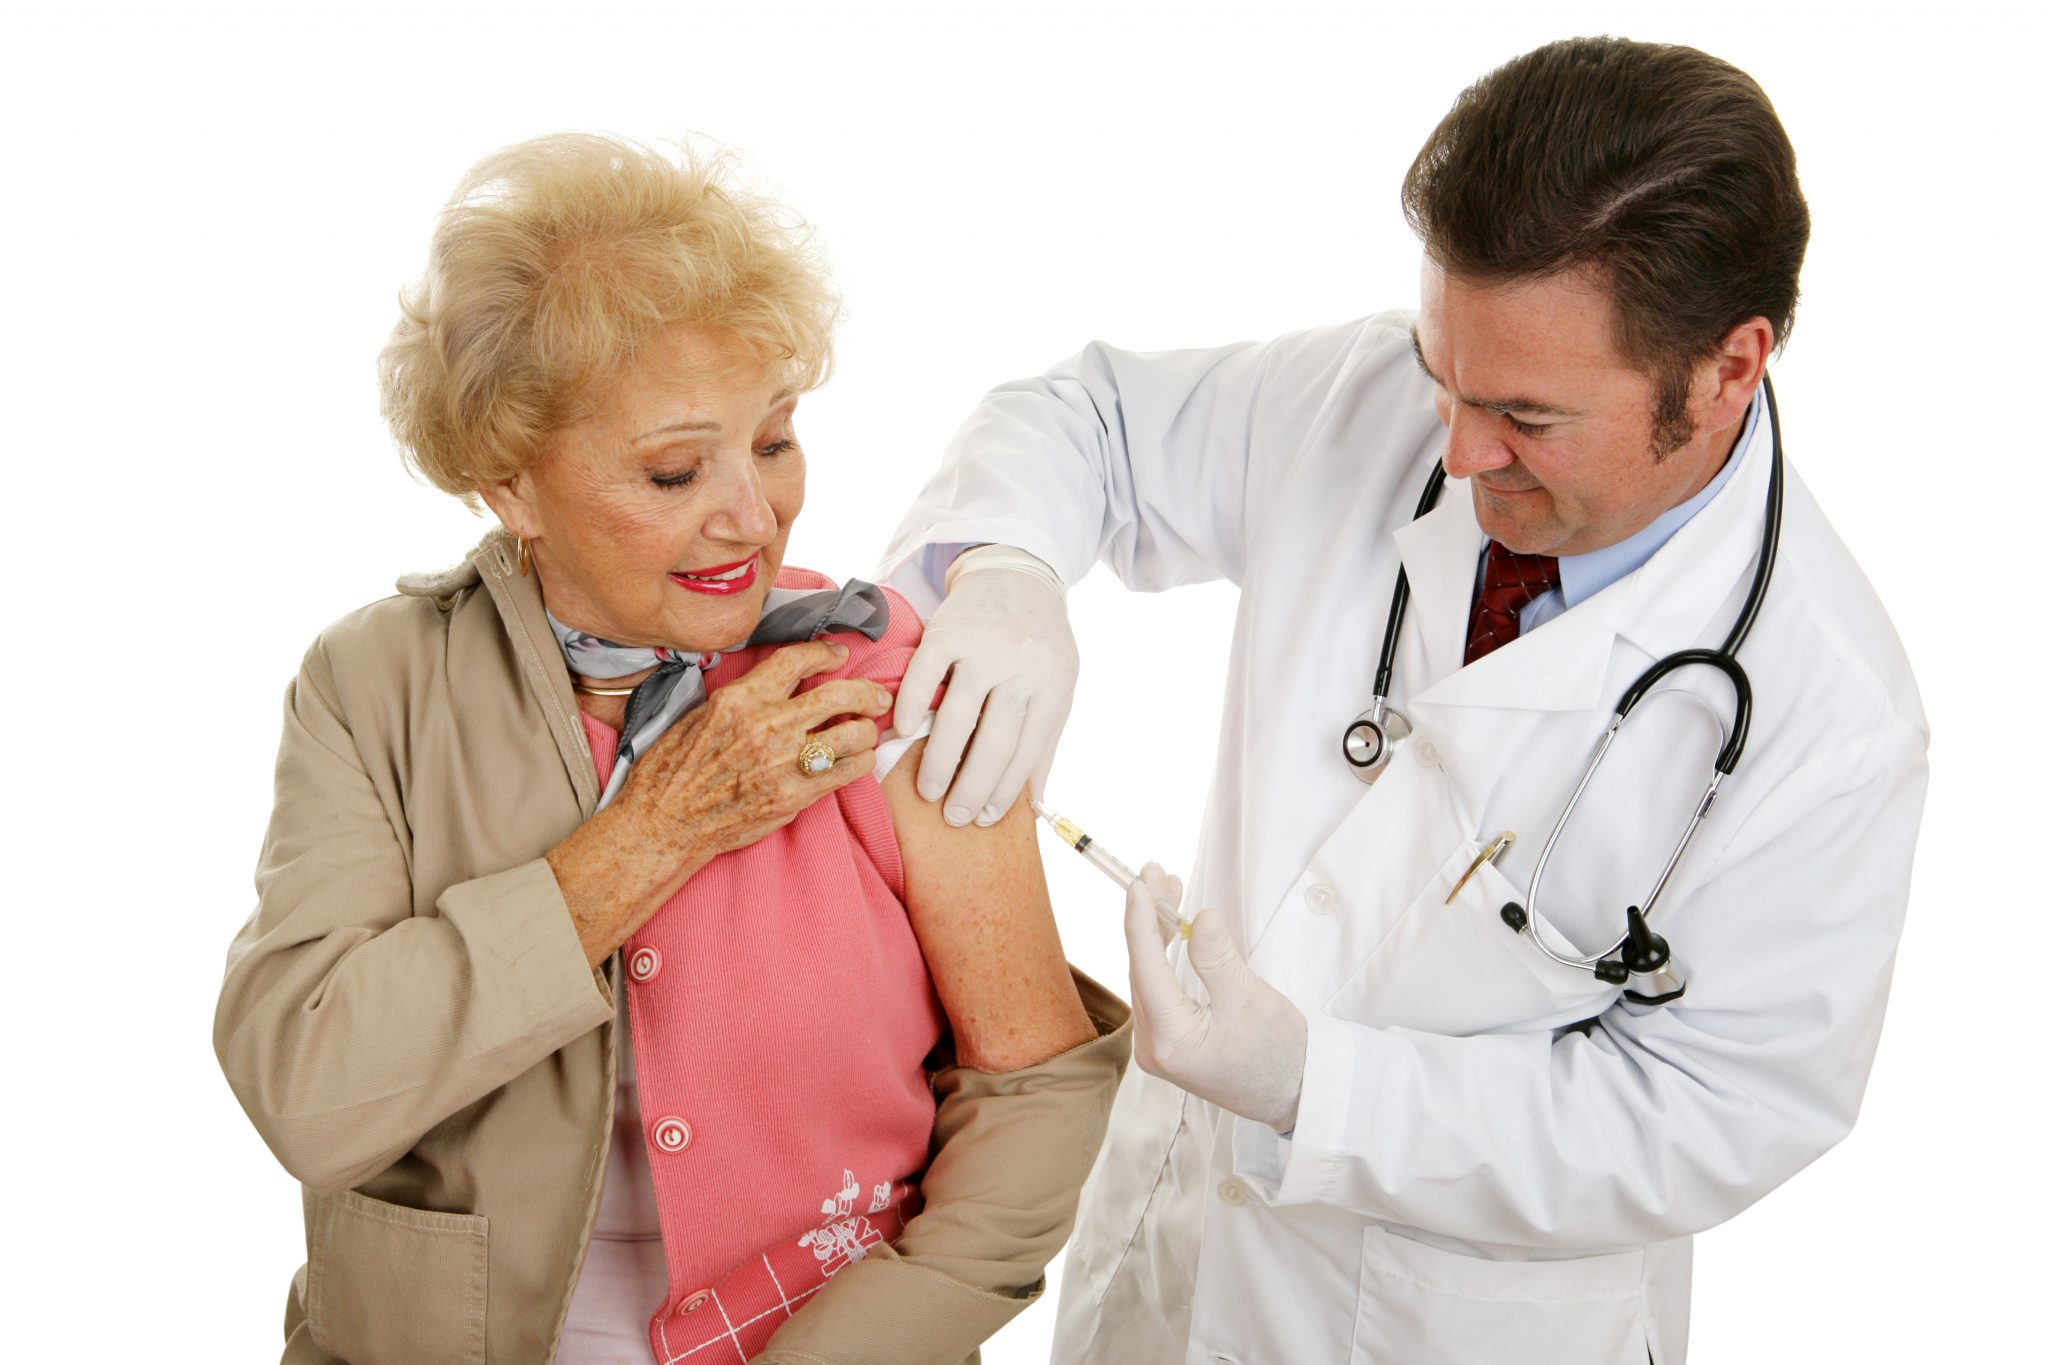 10 flu vaccine dangers revealed | Natural Health 365